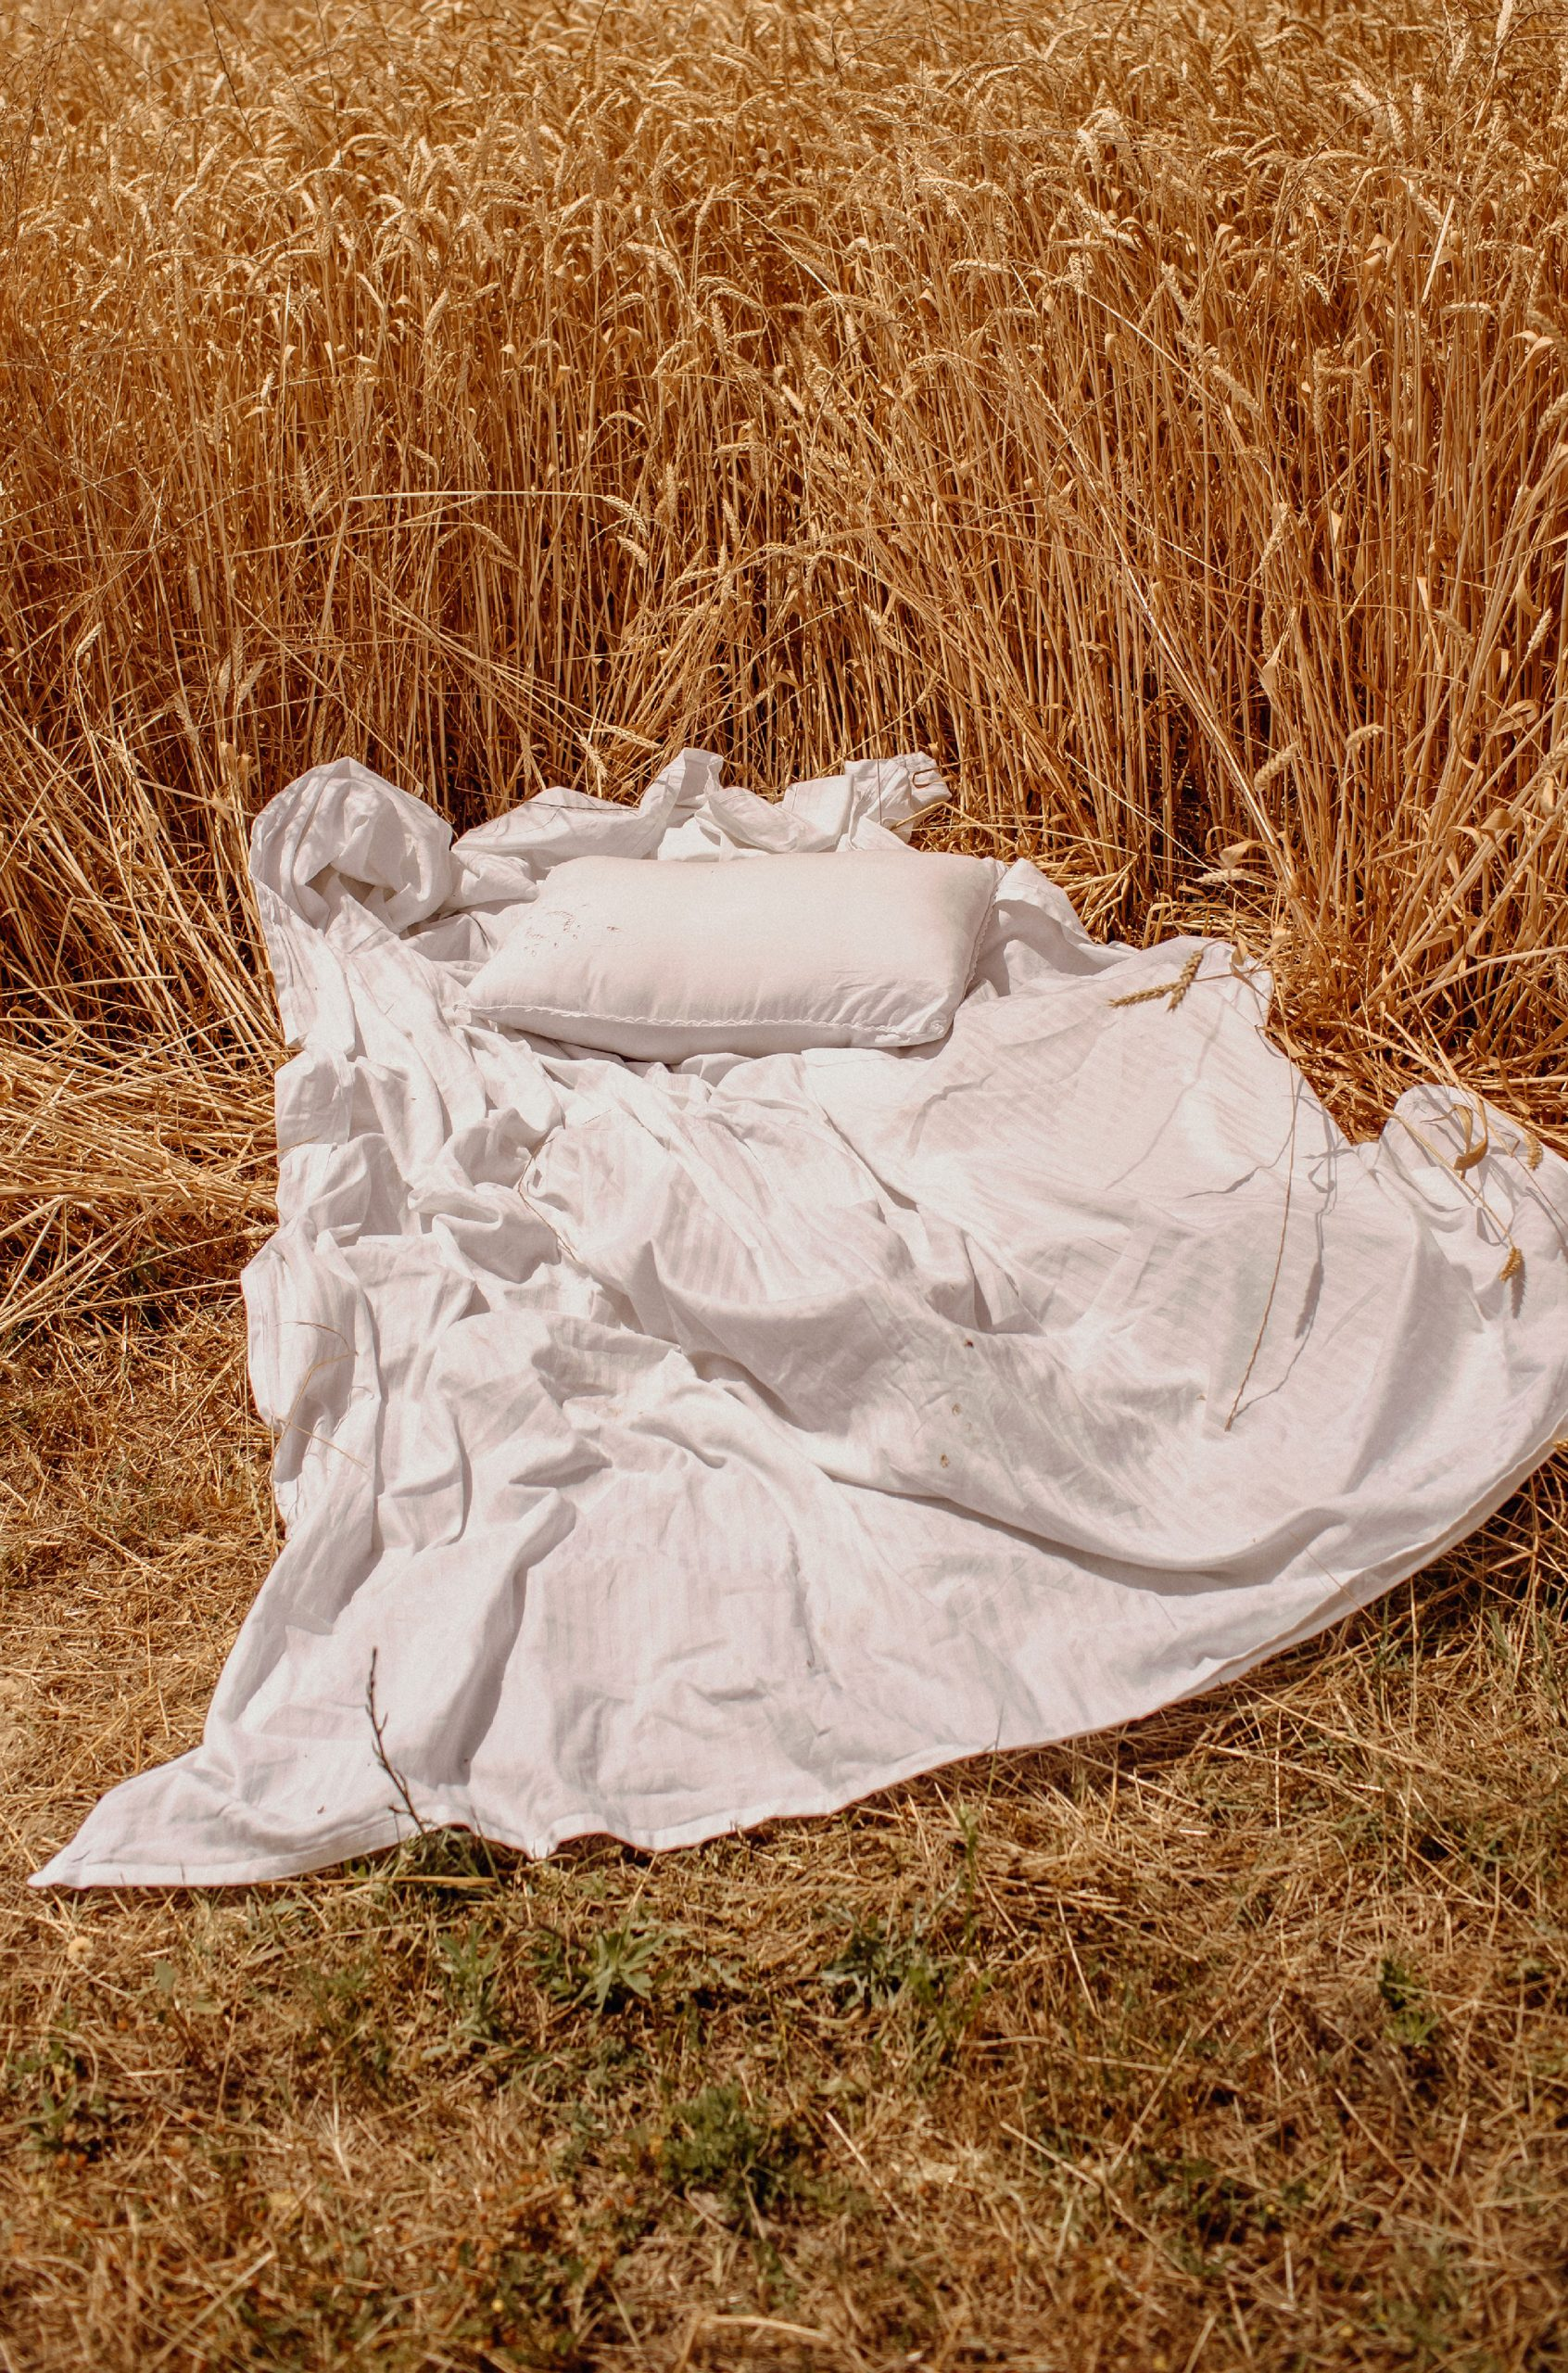 White sheets and pillows in the middle of the field